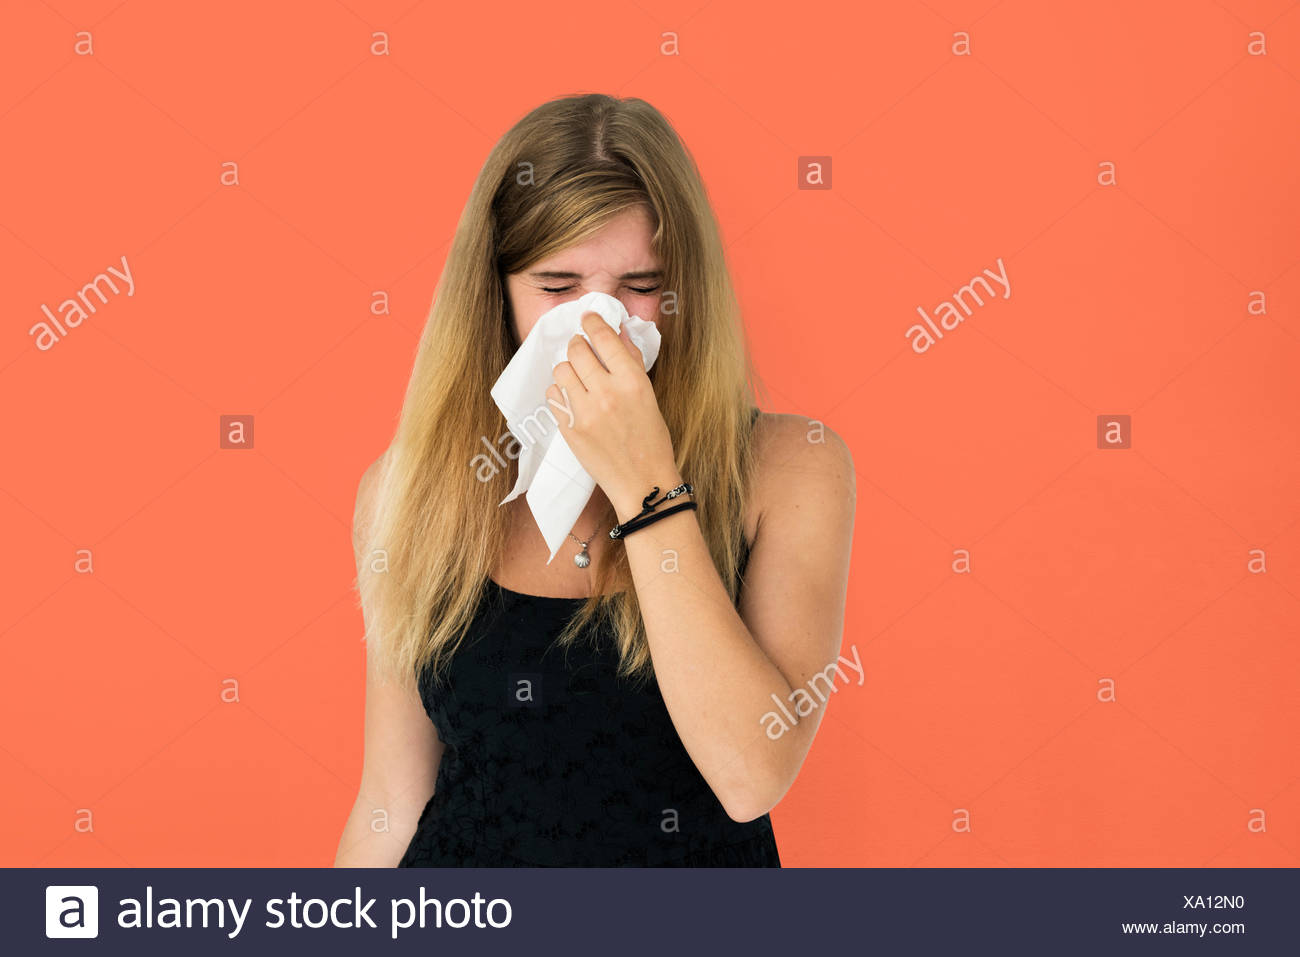 Blonde Girl Crying Sneezing Concept - Stock Image